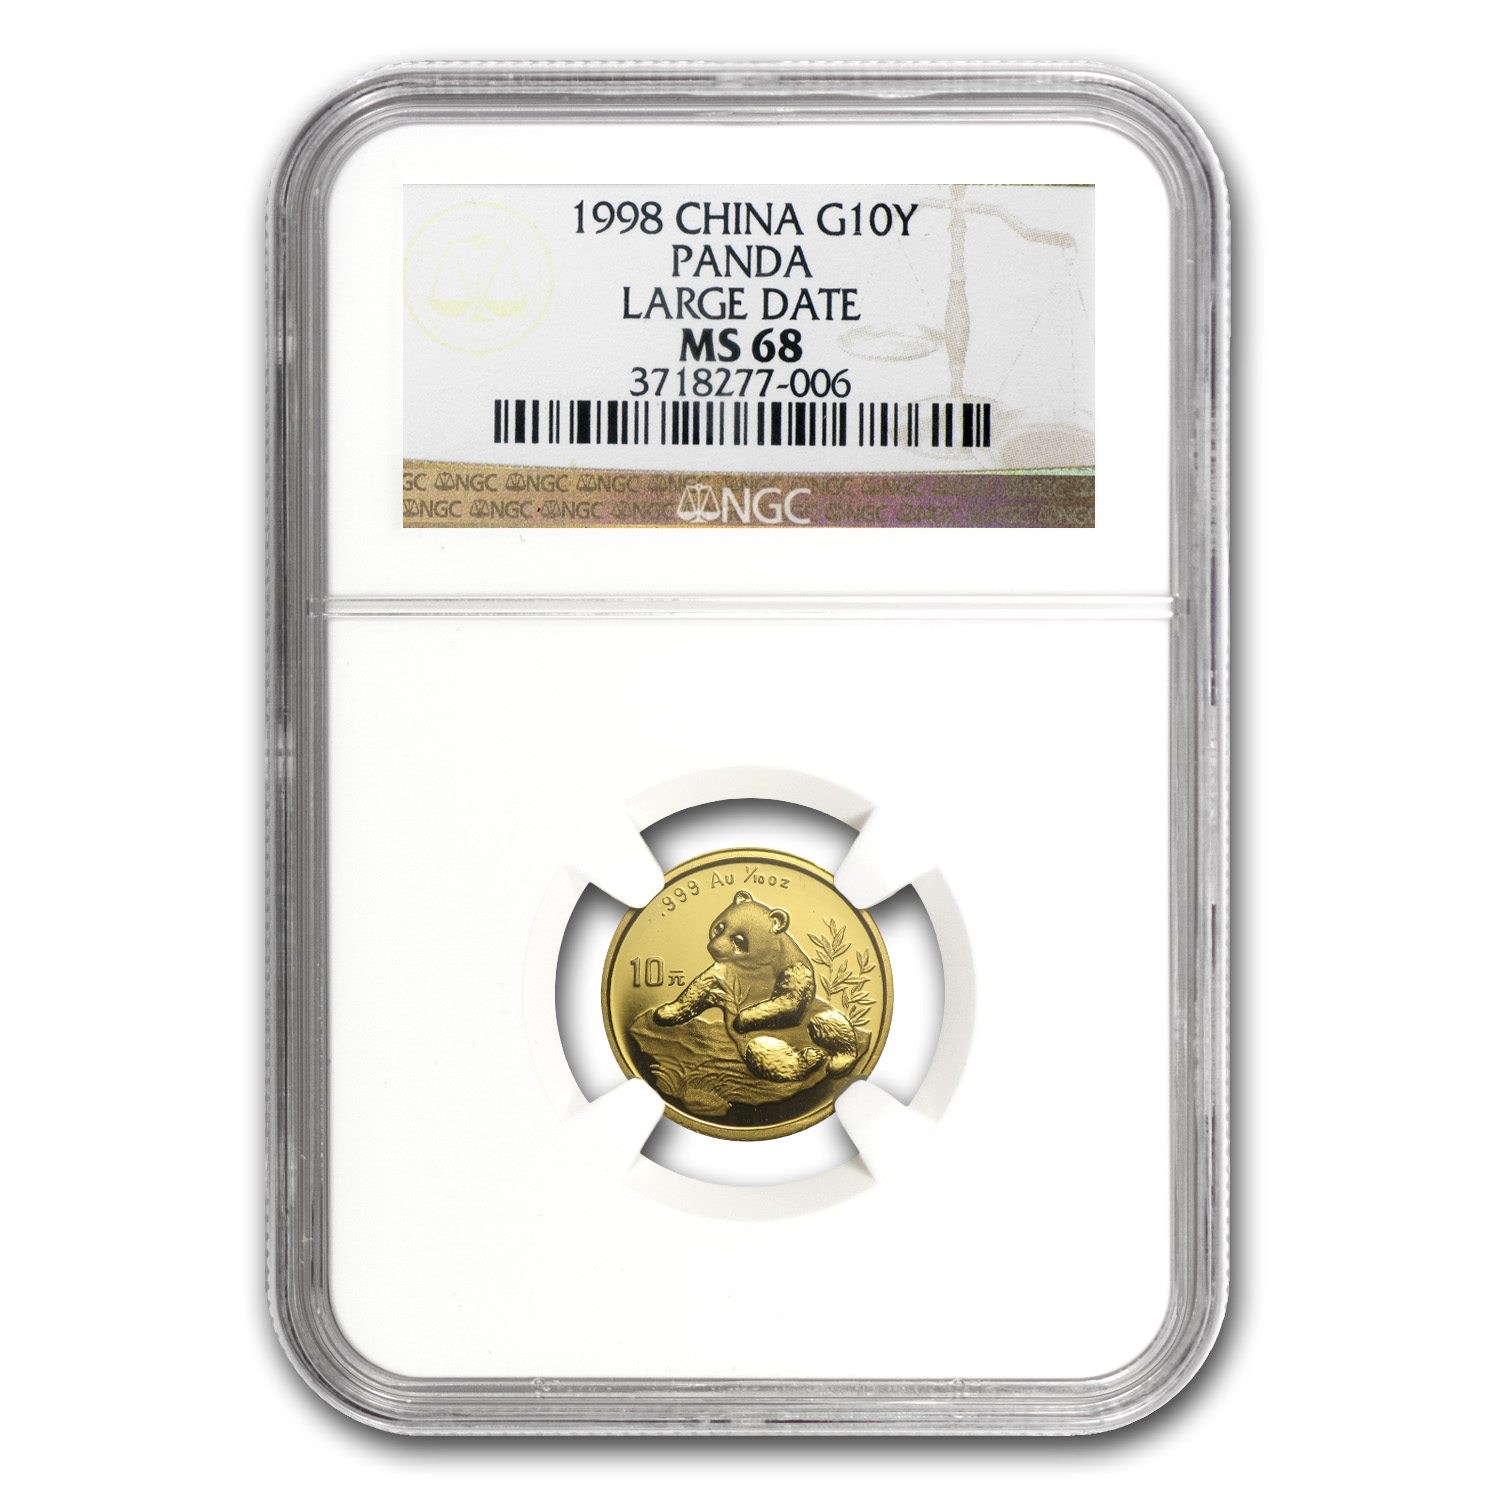 1998 China 1/10 oz Gold Panda Large Date MS-68 NGC